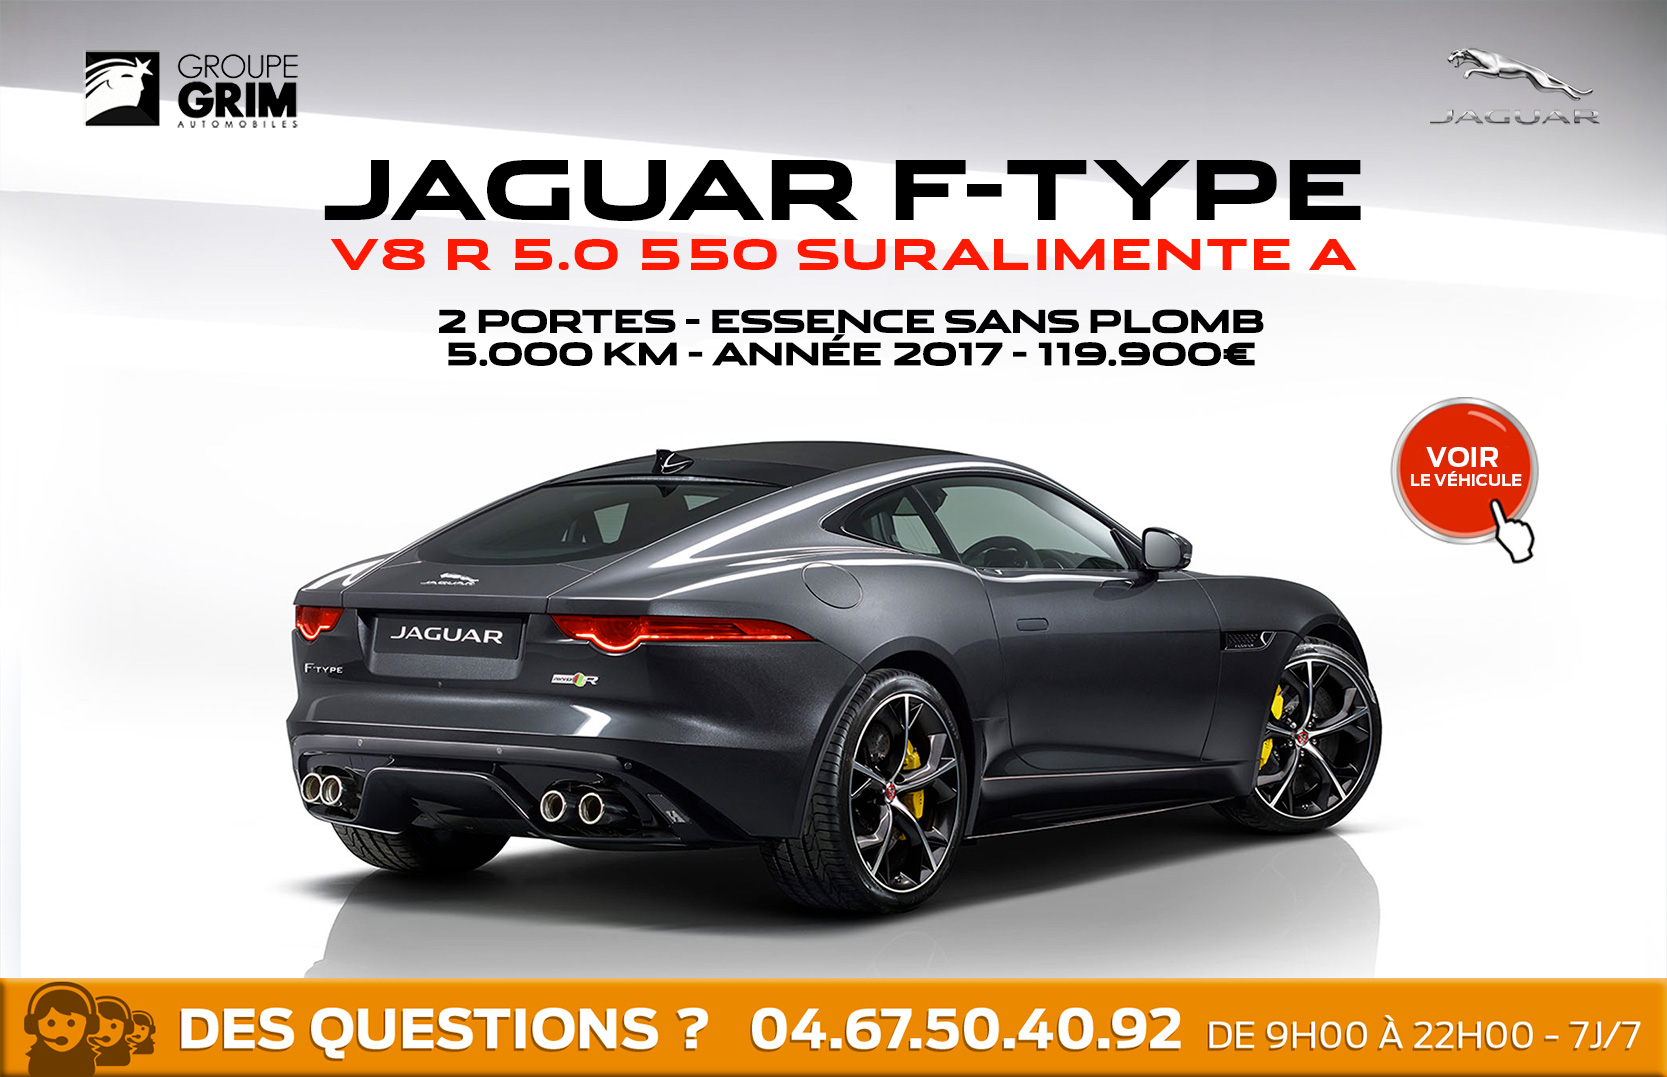 jaguar f type v8 550 pr te partir jaguar montpellier land rover montpellier land rover. Black Bedroom Furniture Sets. Home Design Ideas